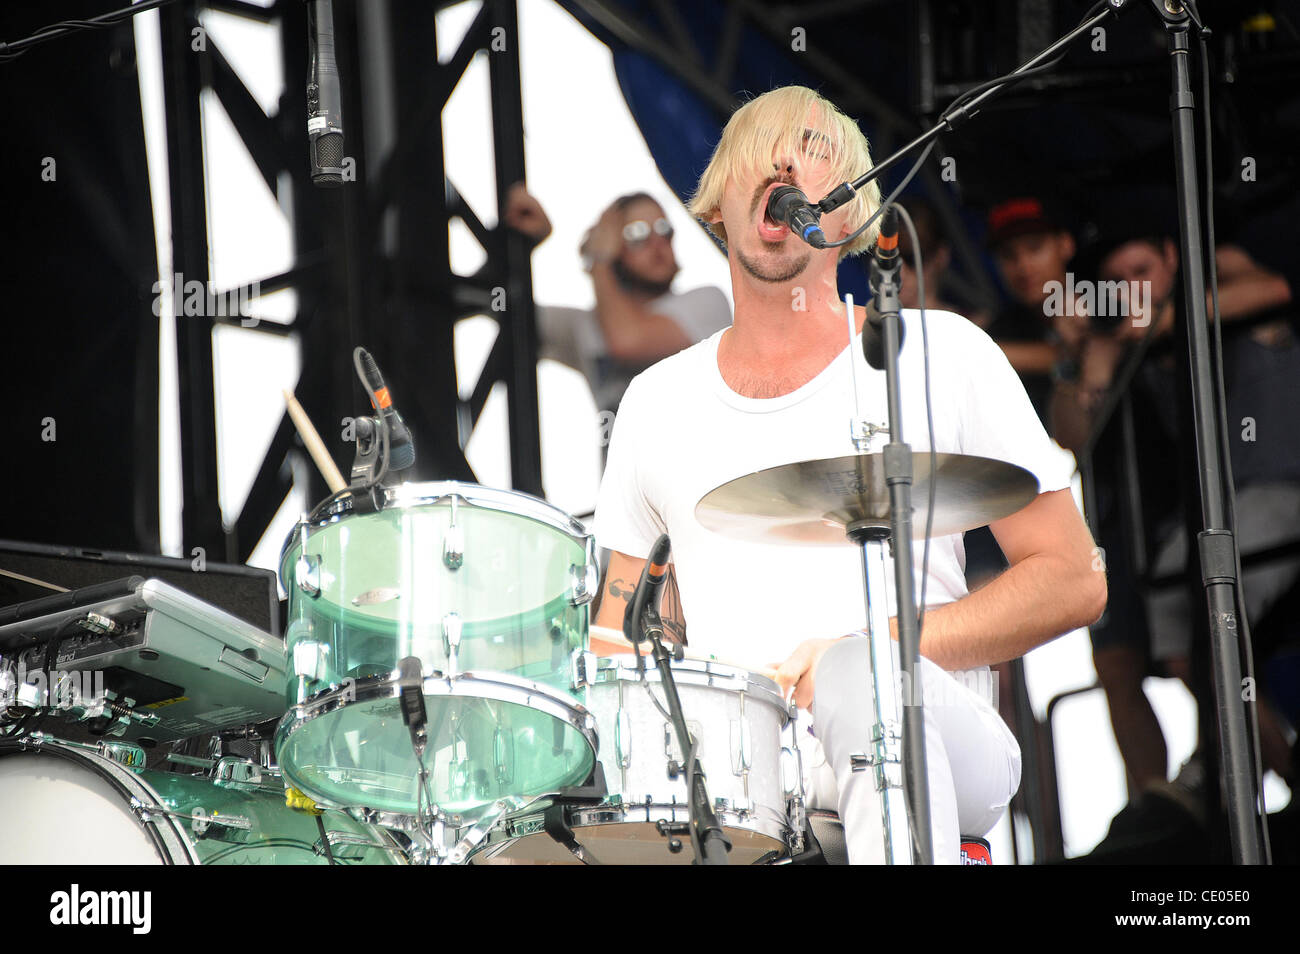 Aug 6, 2011 - Chicago, Illinois; USA - Drummer SEBASTIAN GRAINGER of the band Death From Above 1979 performs live - Stock Image